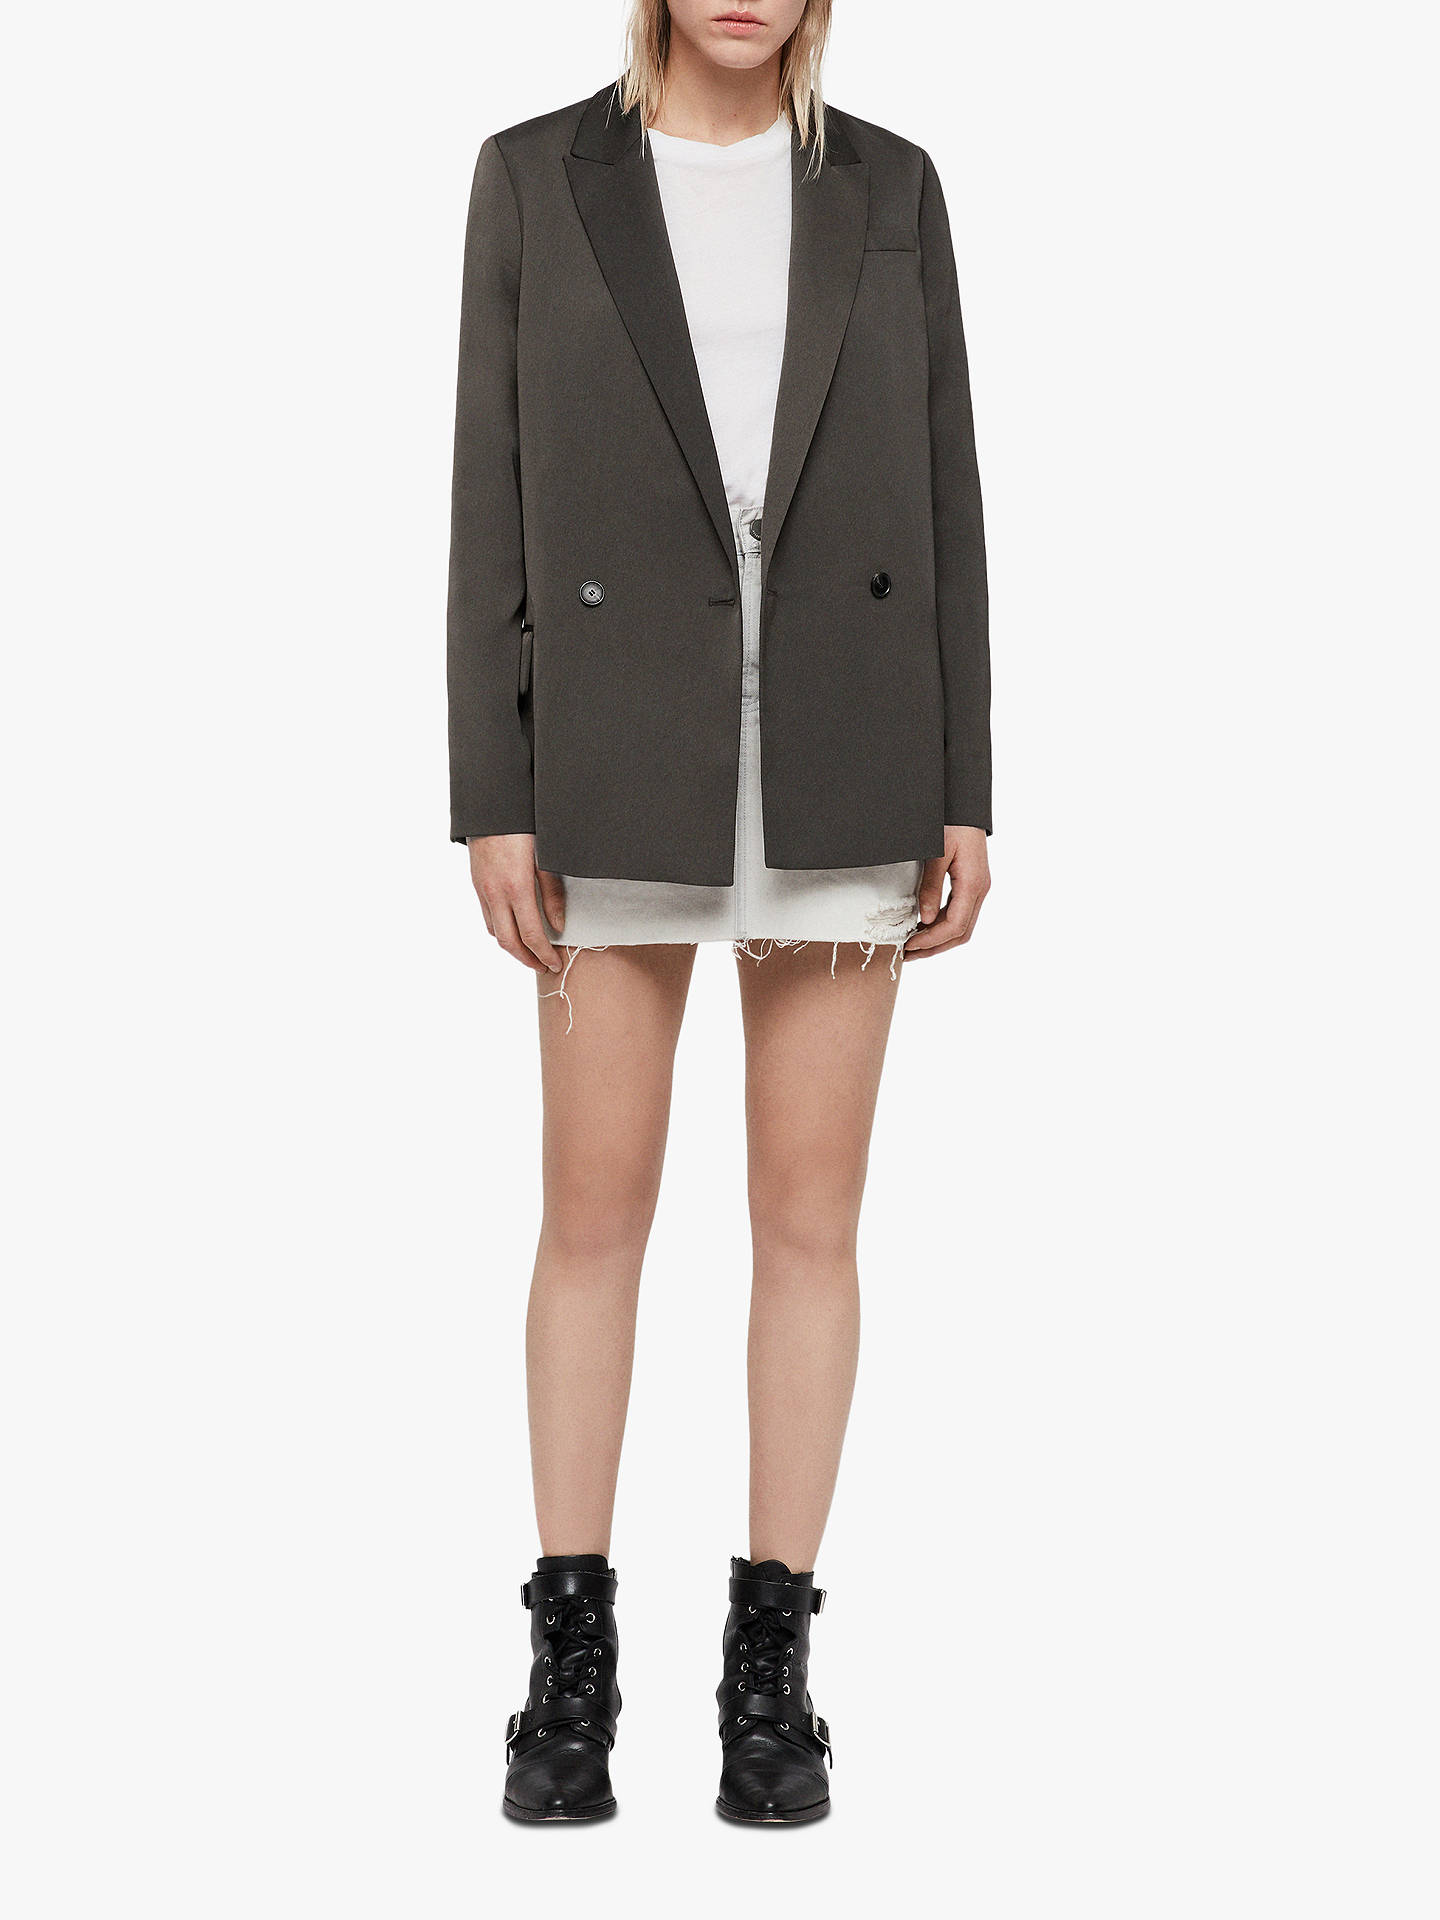 BuyAllSaints Jelsa Blazer, Pewter, 6 Online at johnlewis.com